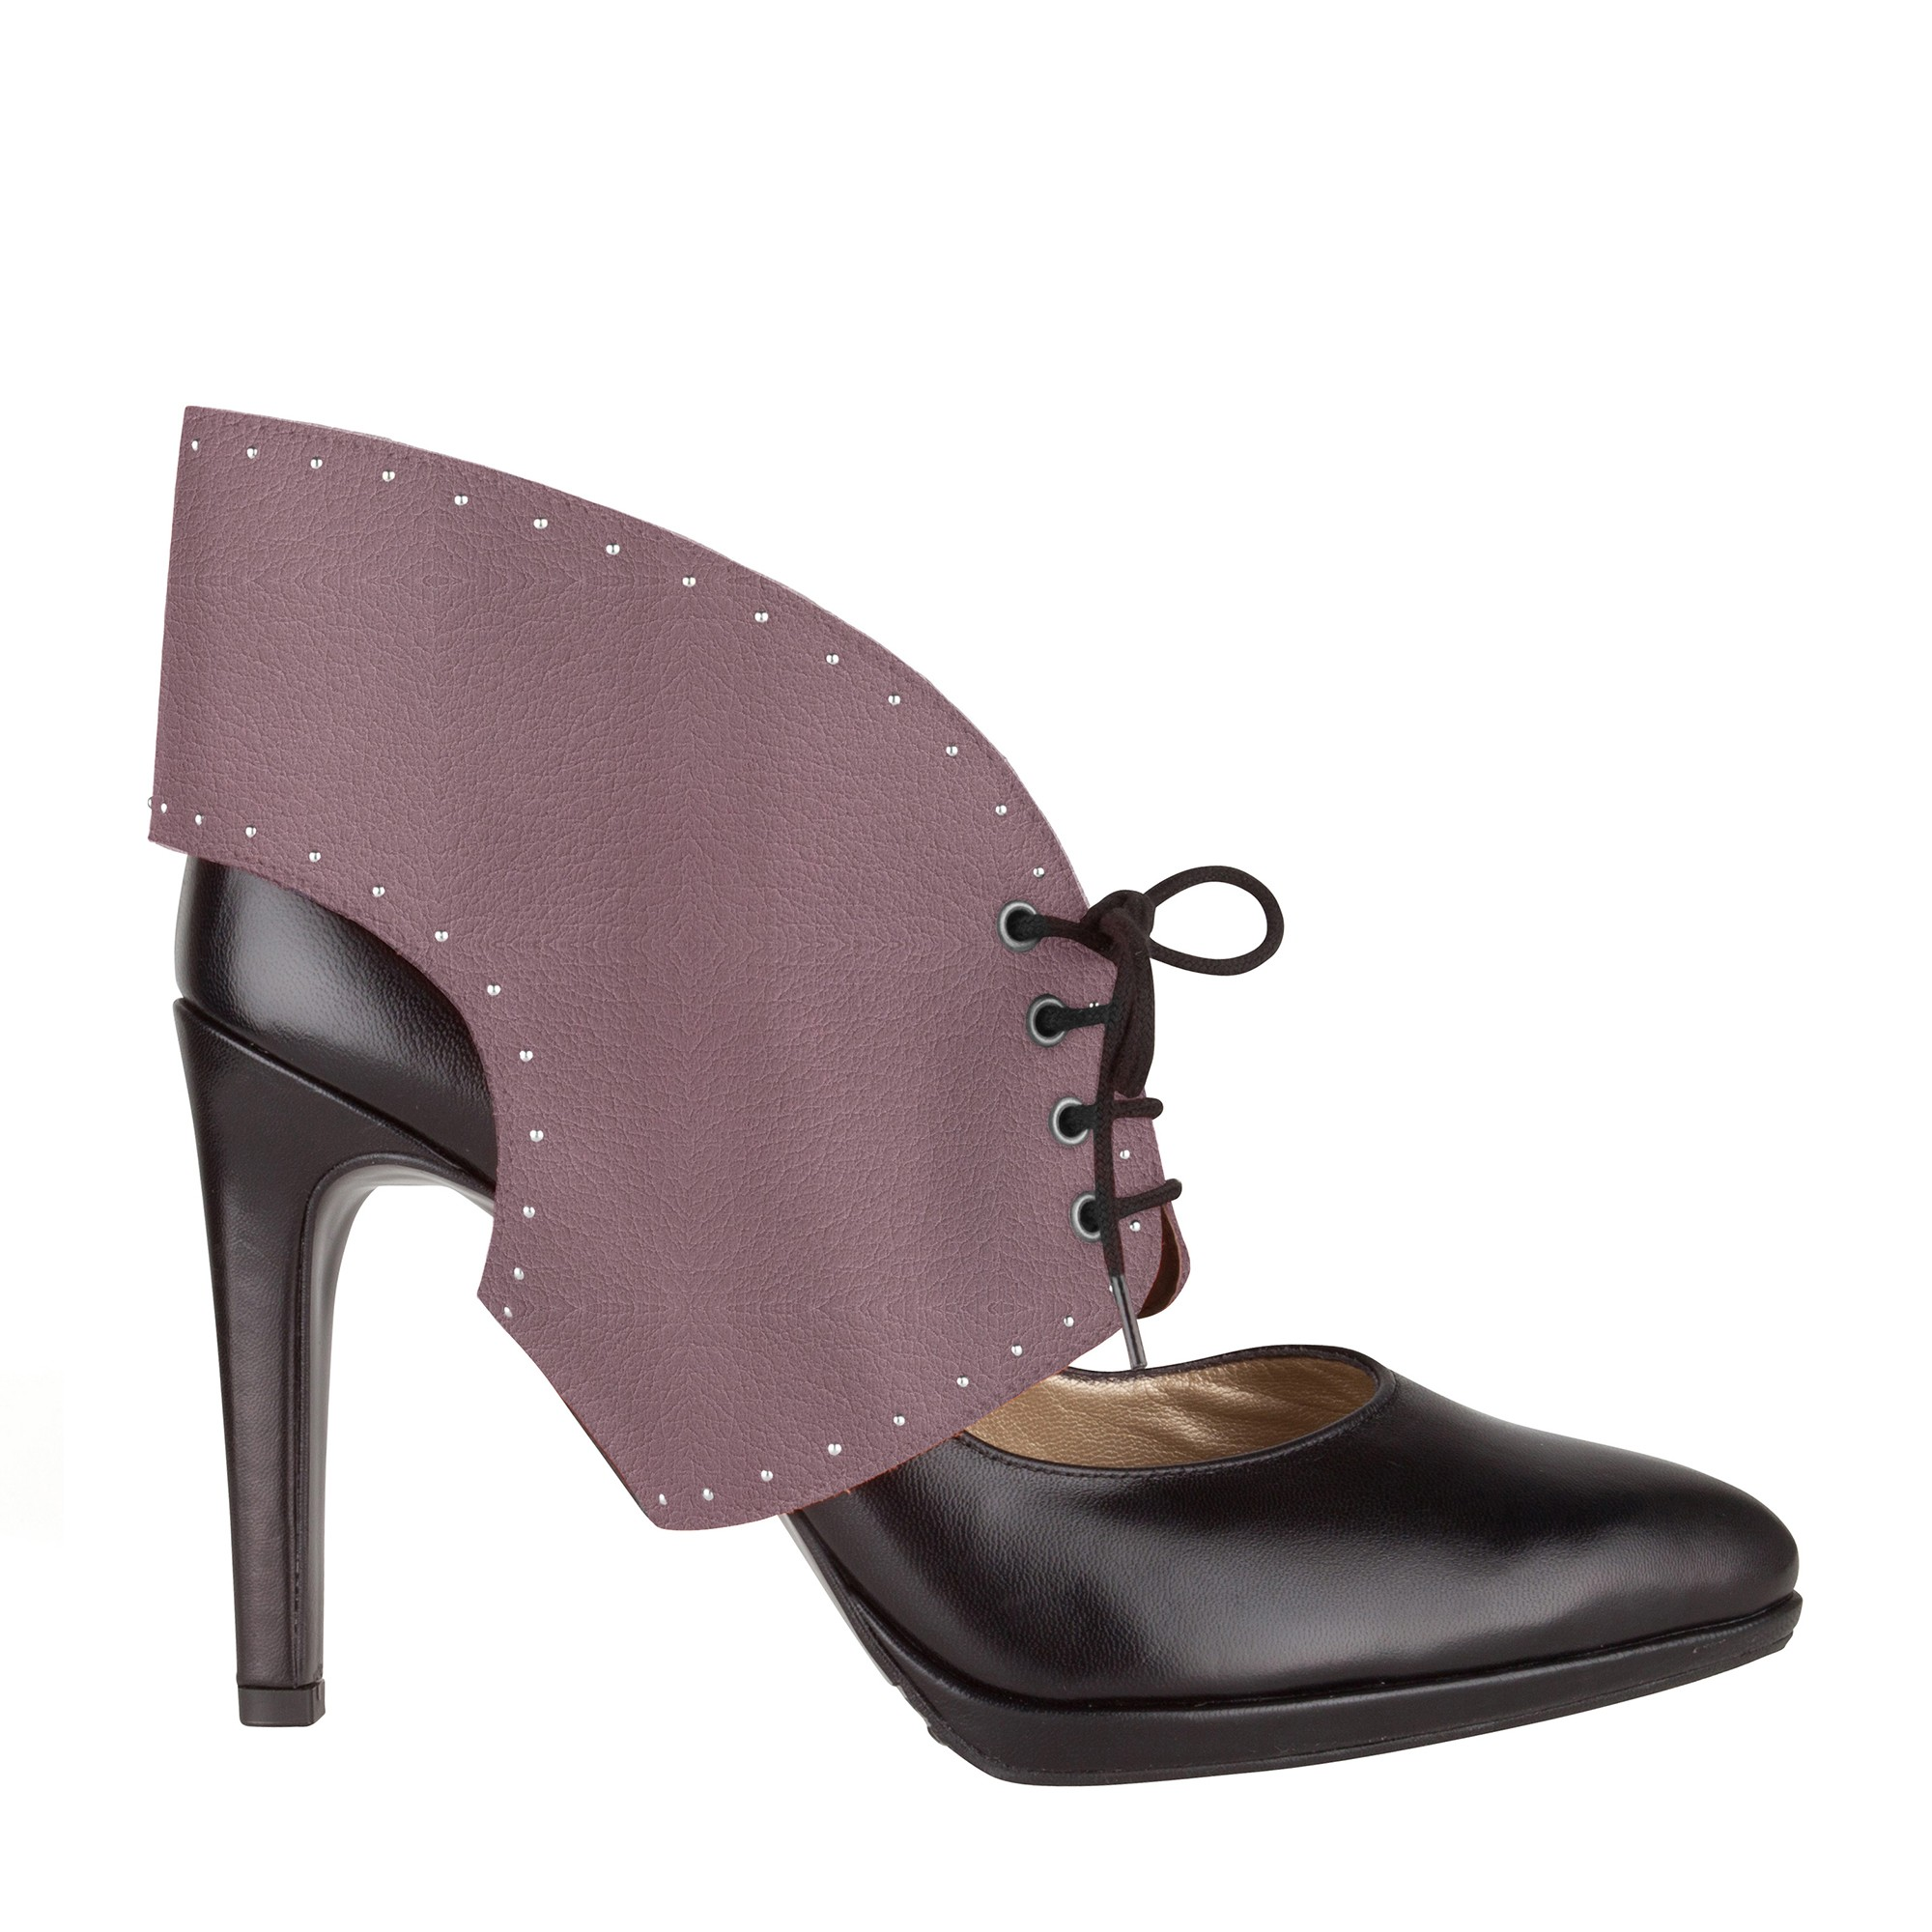 Ilona rose purple studded